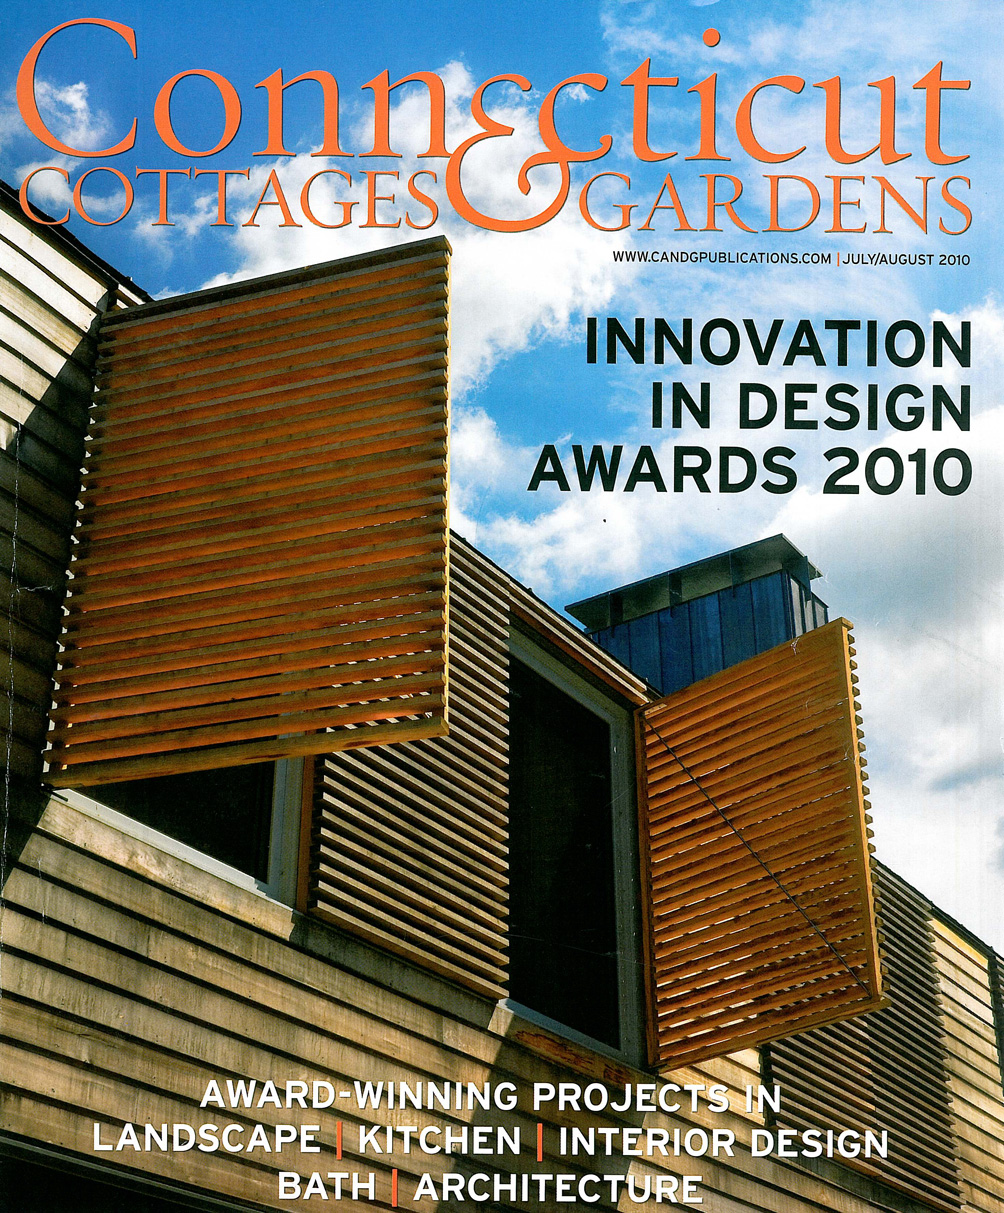 CTC&G Innovation in Design Awards Issue, 2010